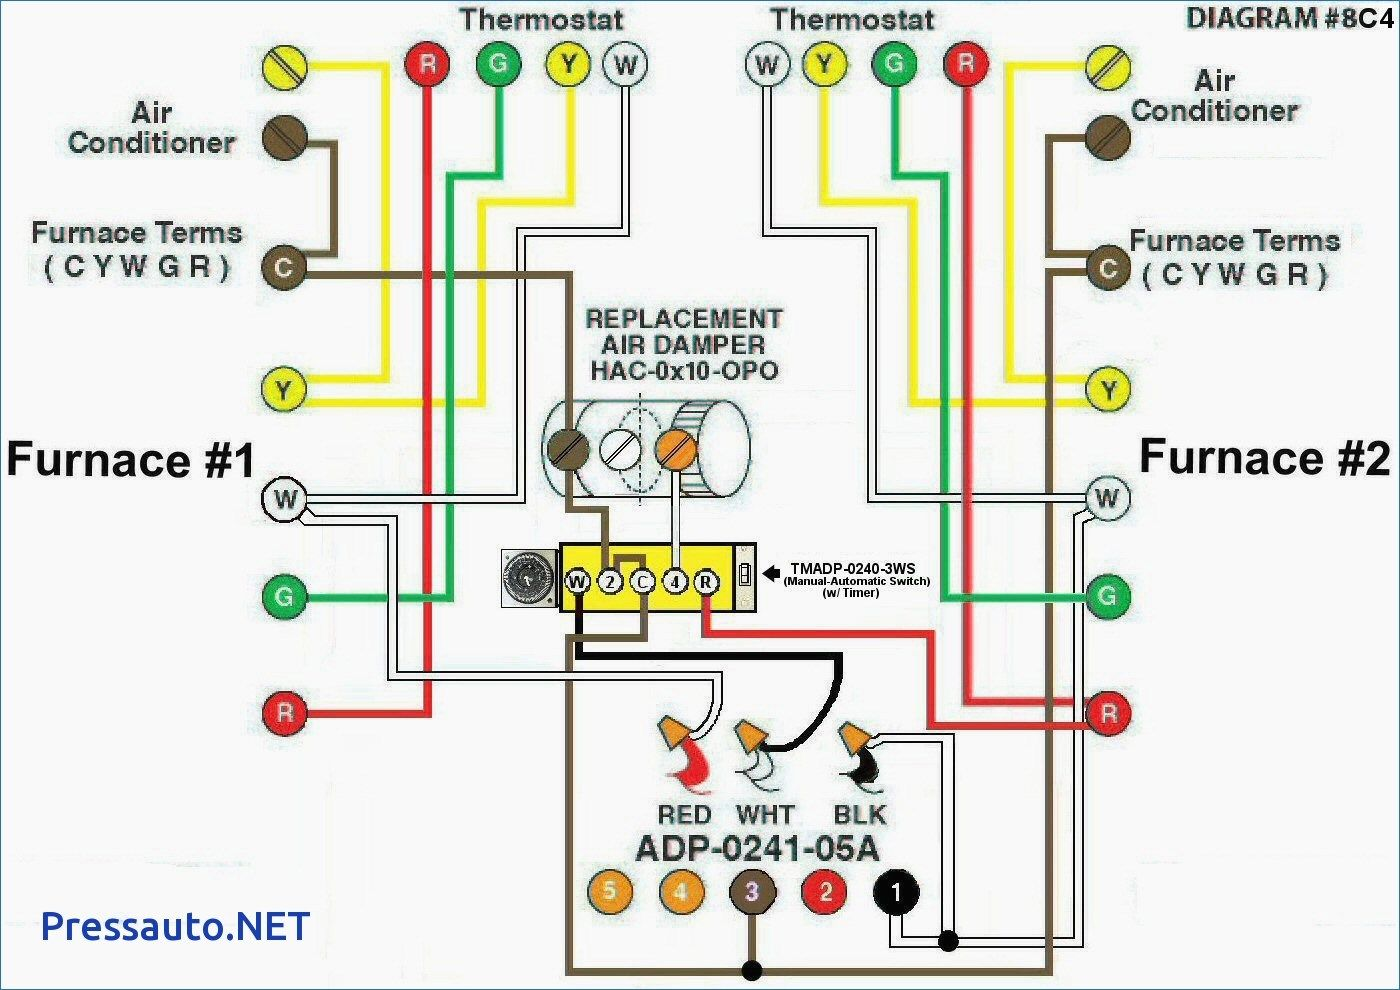 Lennox Elite Furnace Thermostat Wiring Diagram